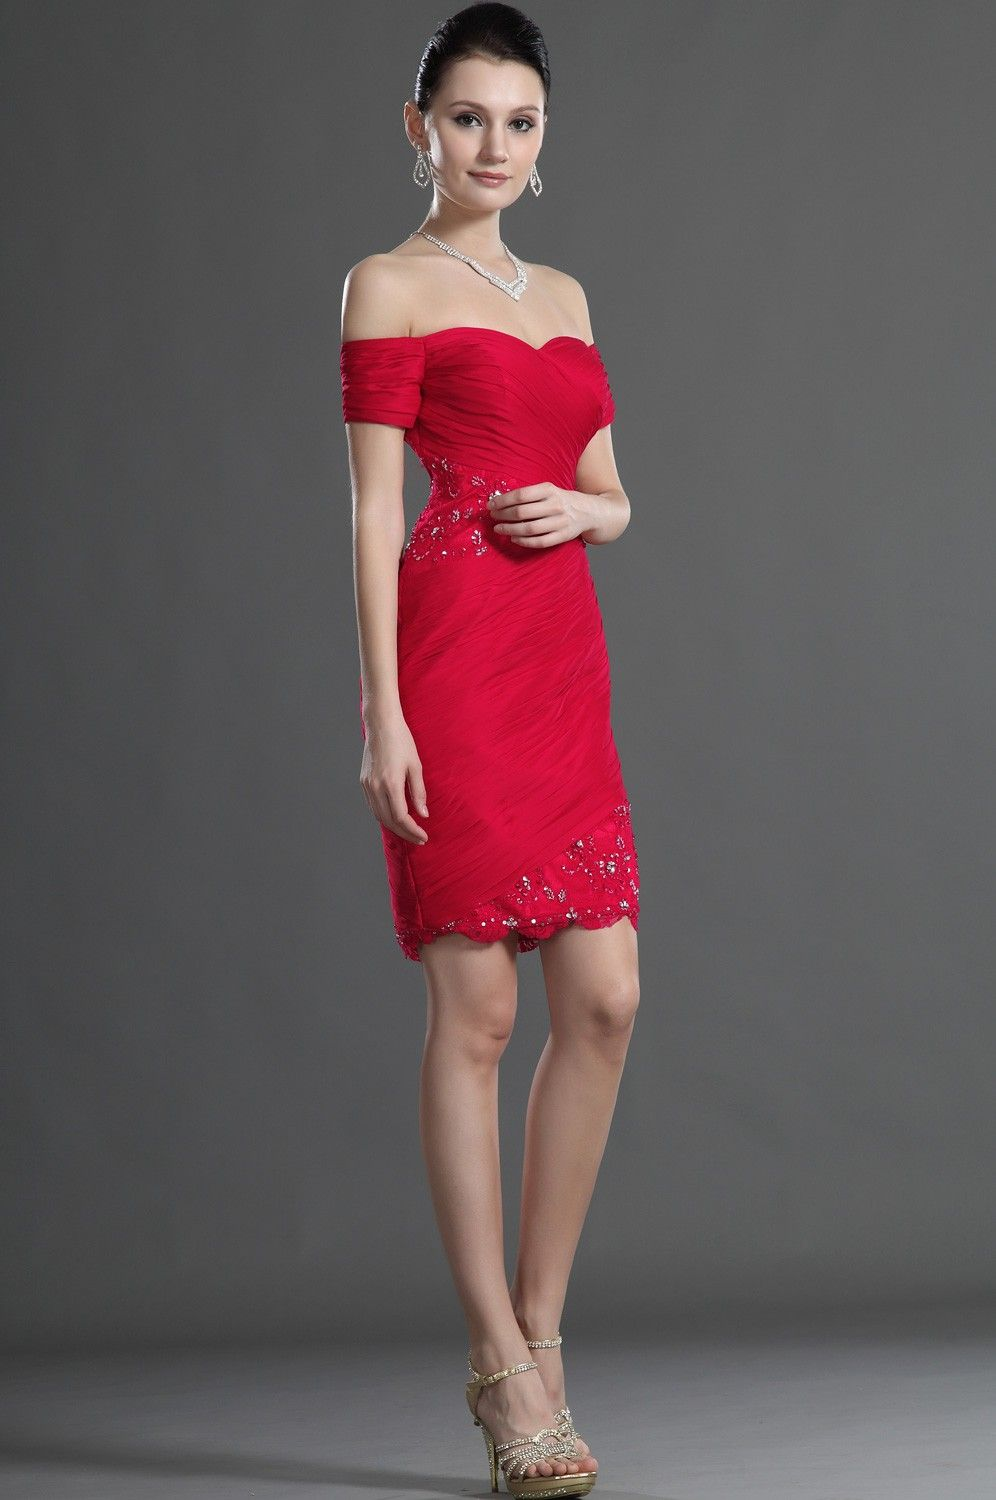 Stylish Red Short Dresses for all Ocassion | Red cocktails, Short ...